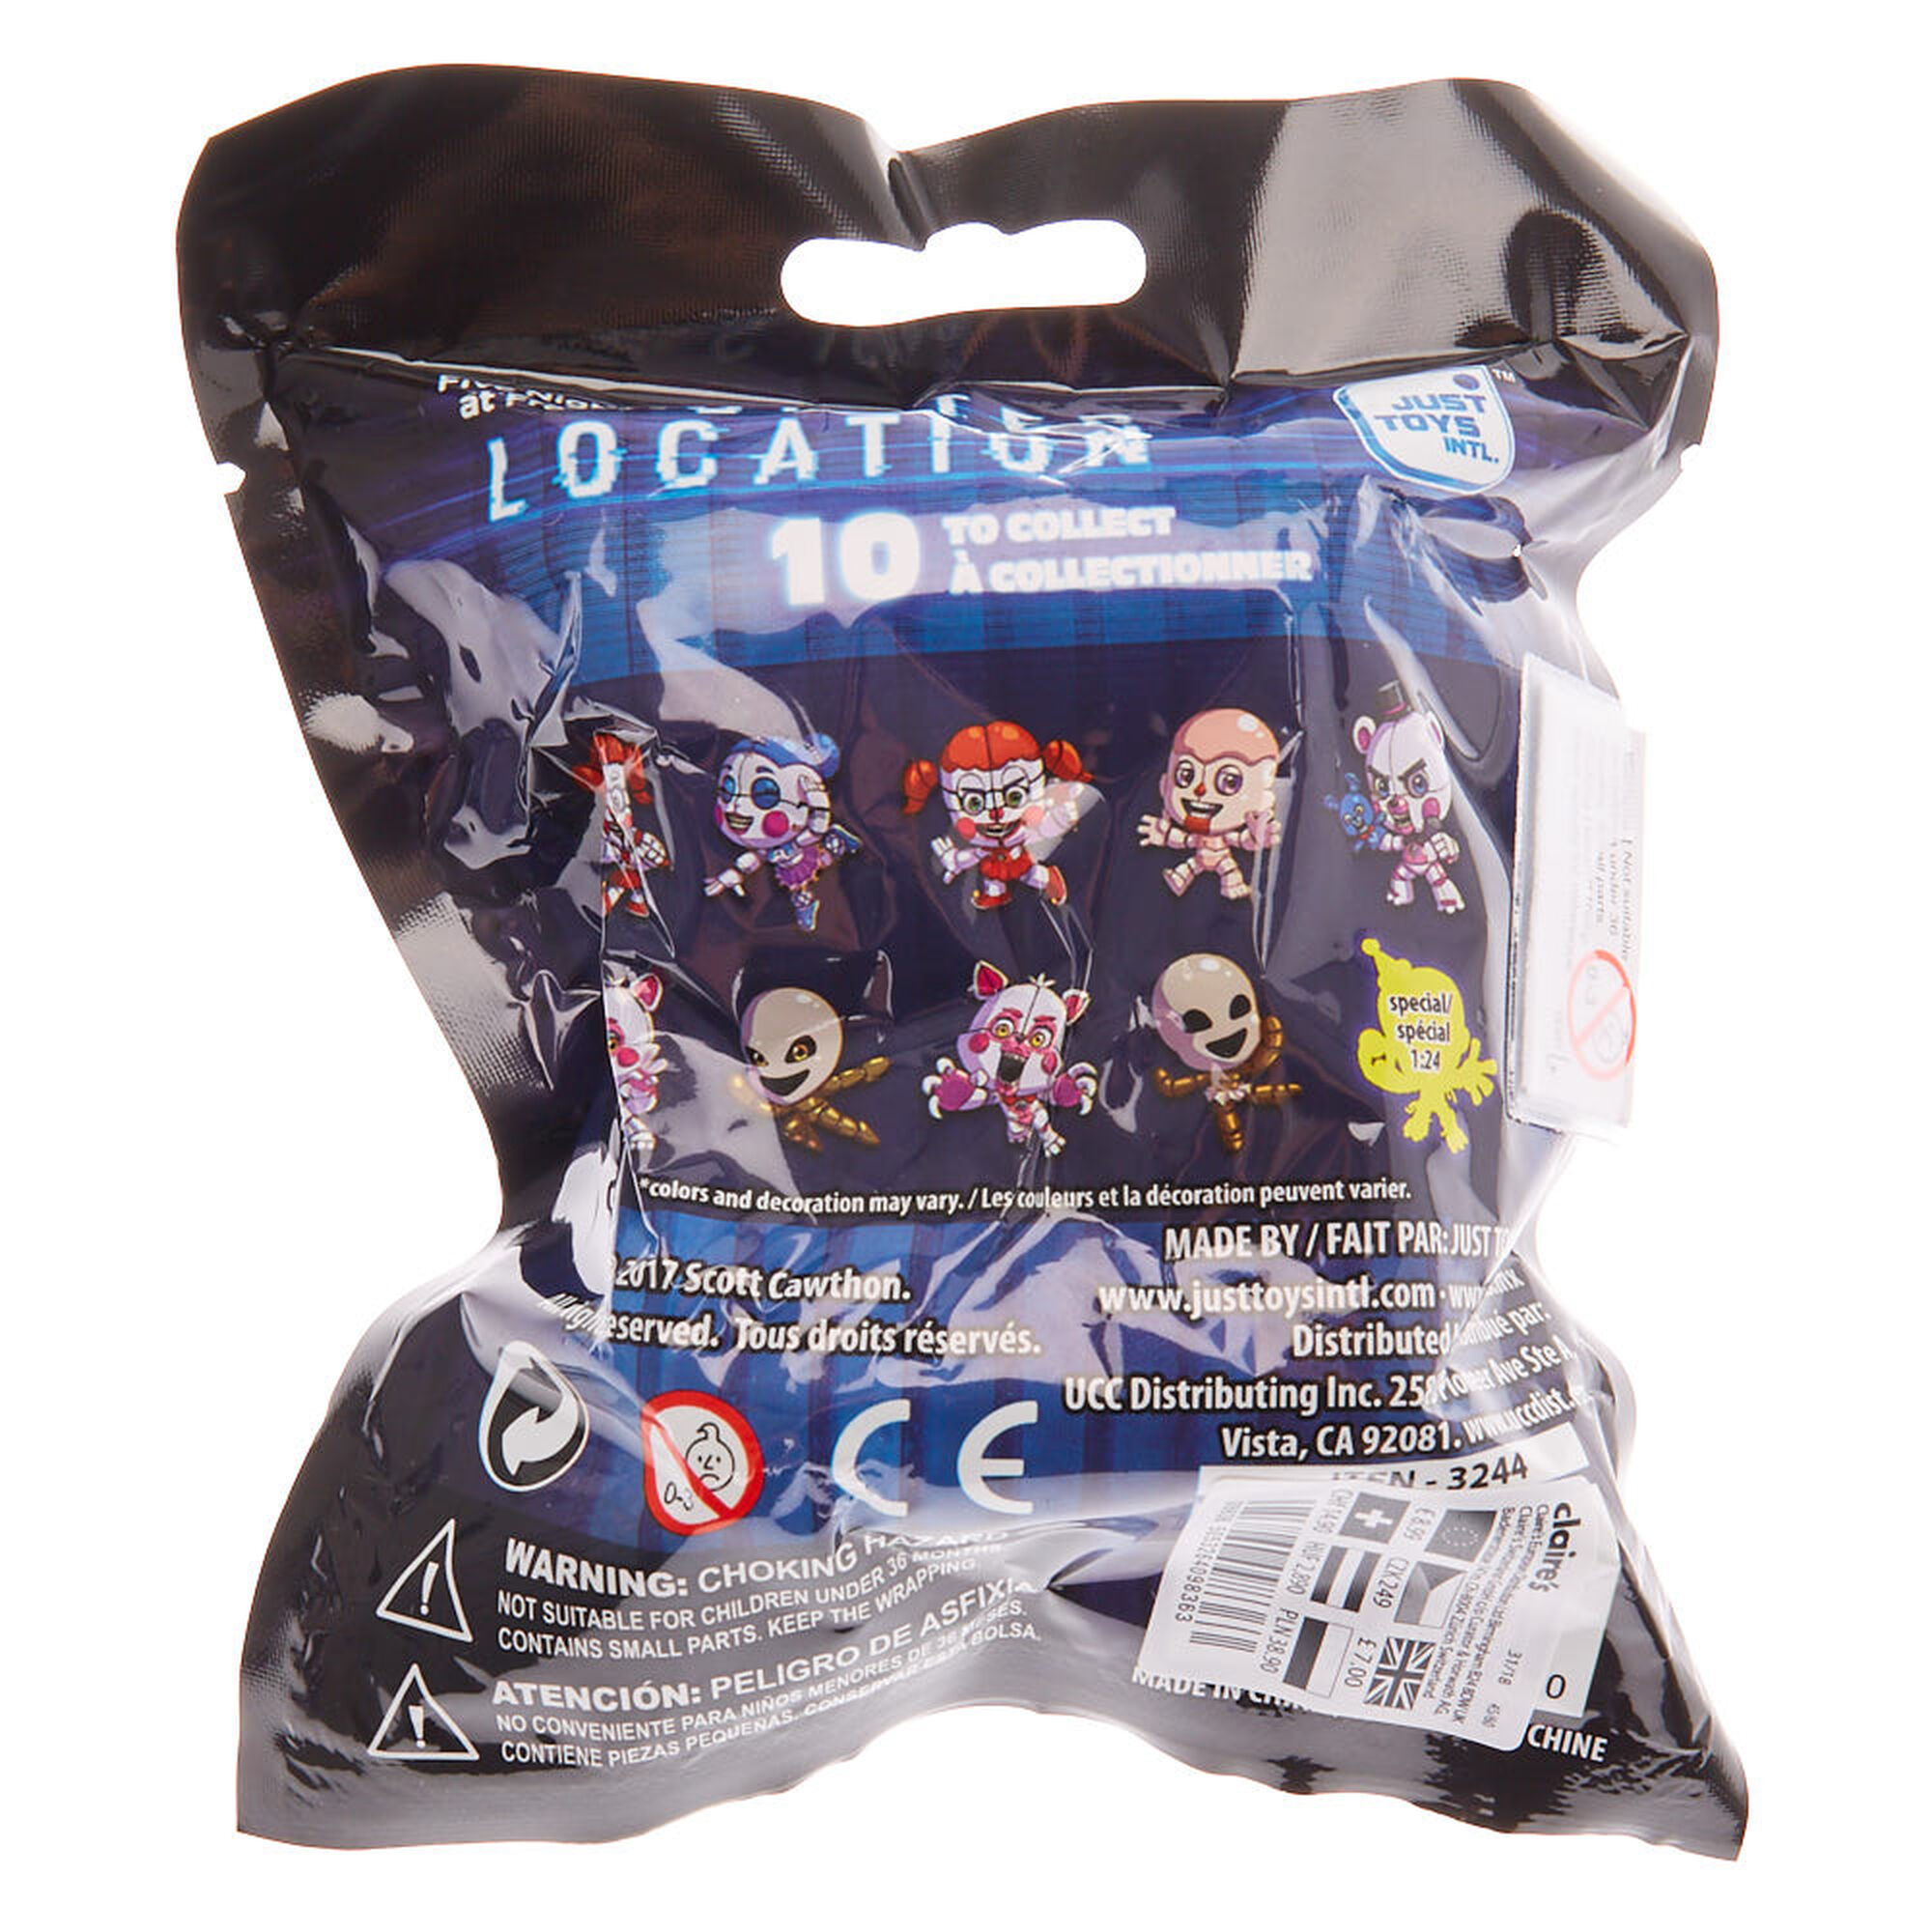 Five Nights at Freddy's: Sister Location™ Backpack Hangers Surprise Bag